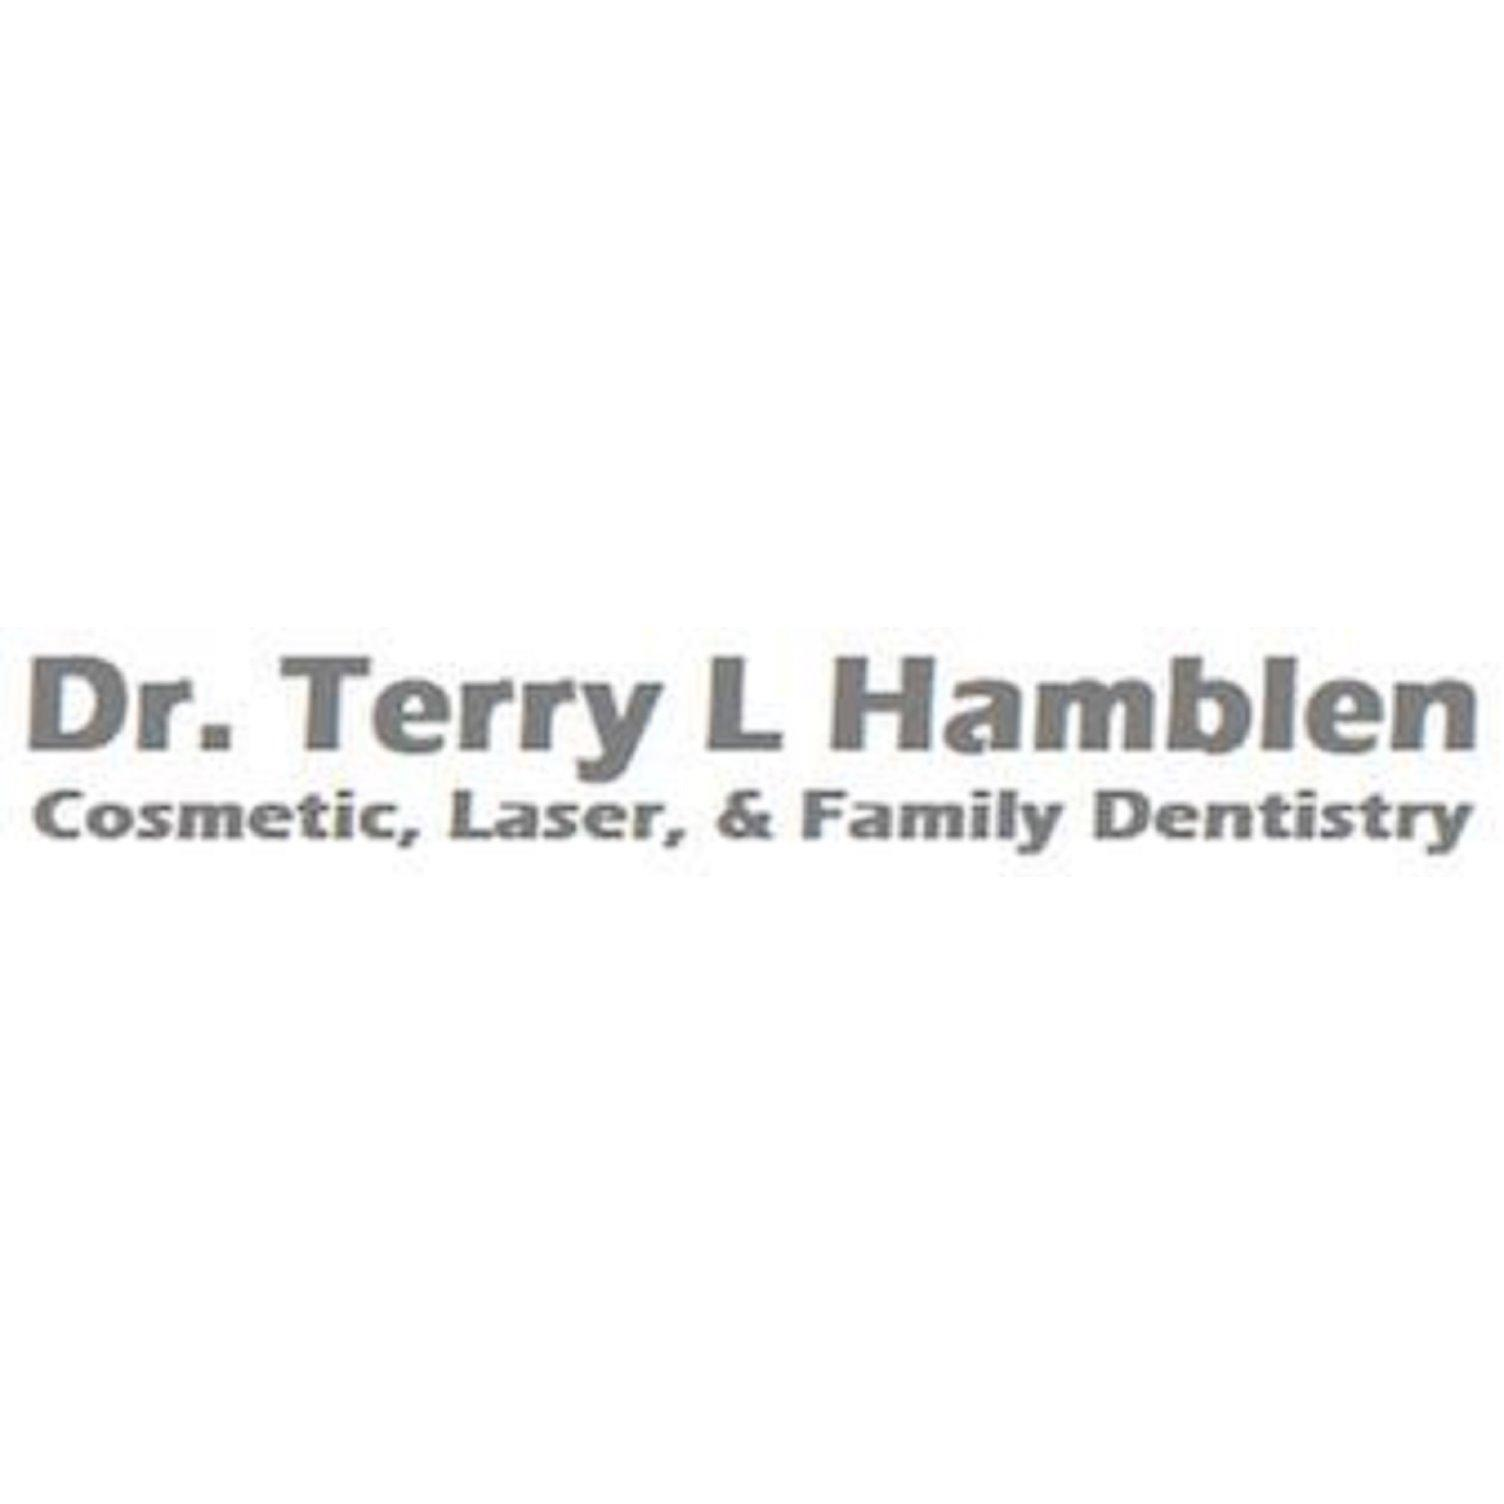 Dr. Terry L Hamblen - Cosmetic, Laser, & Family Dentistry